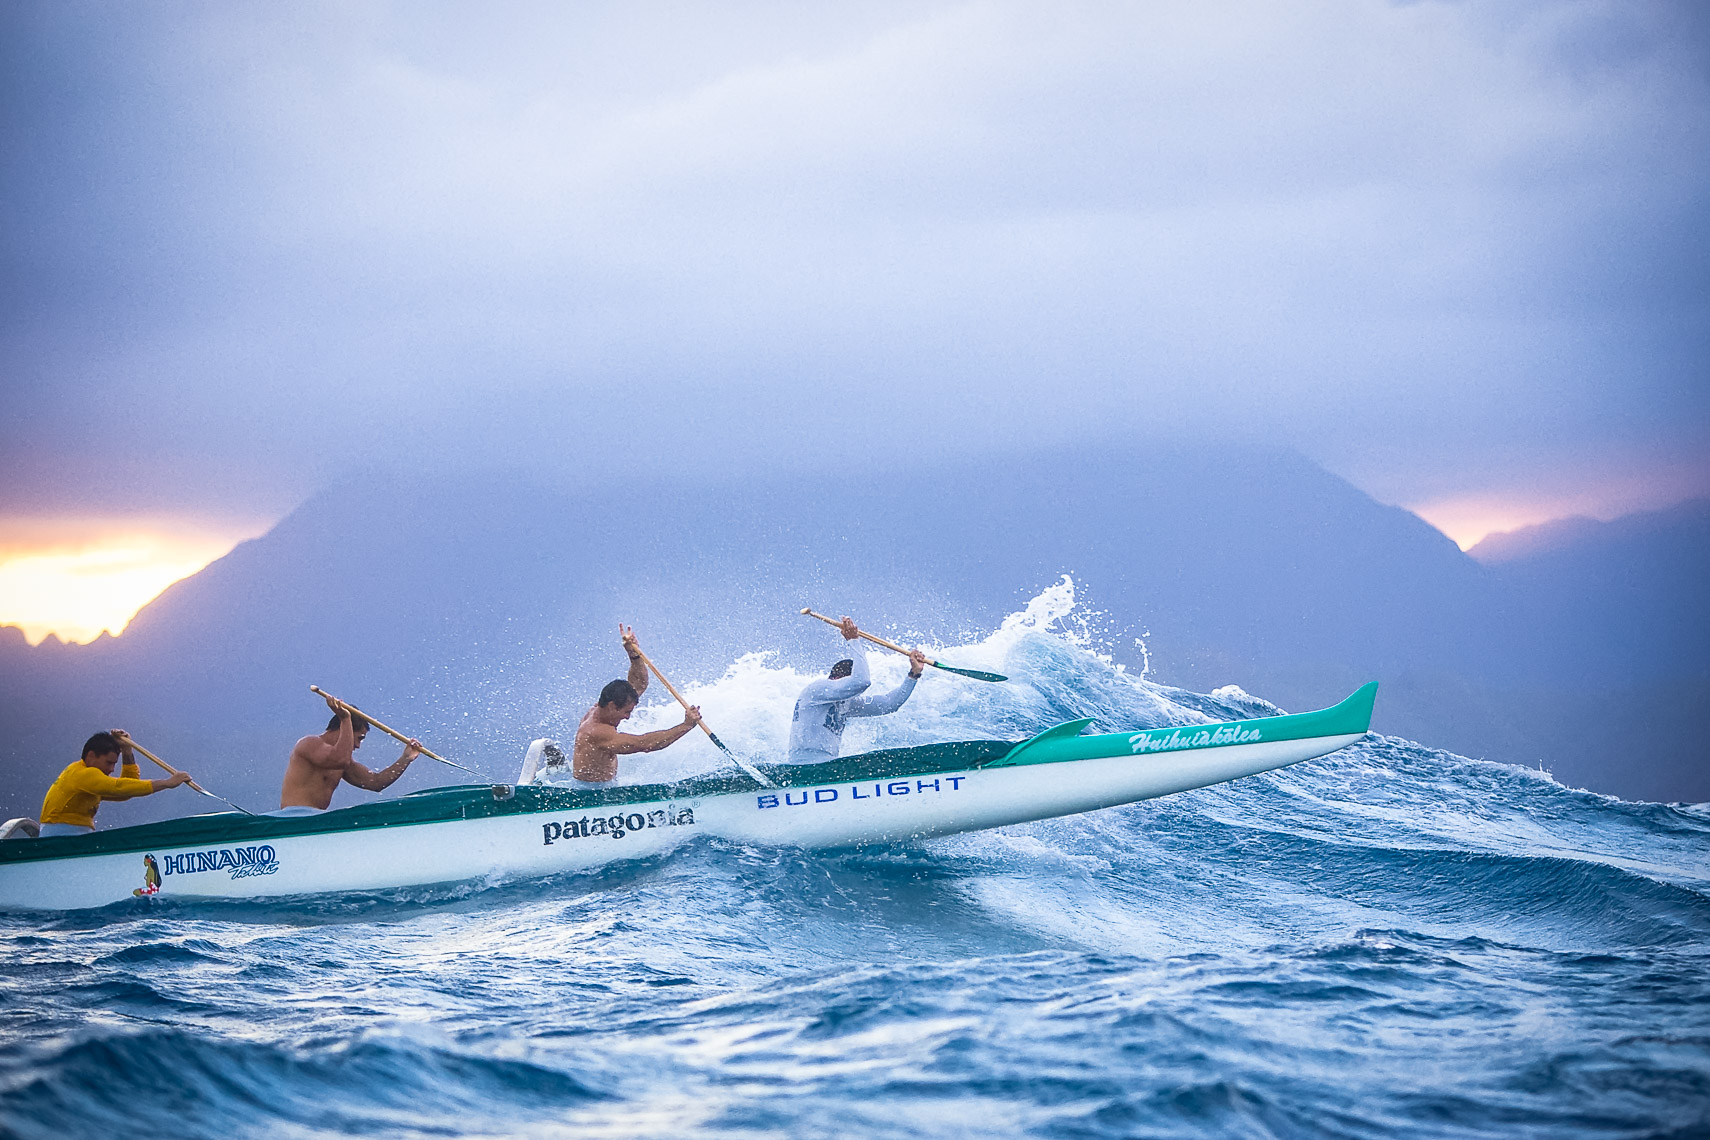 Lanikai Canoe Club Oahu Hawaii for Canoe and Kayak Magazine